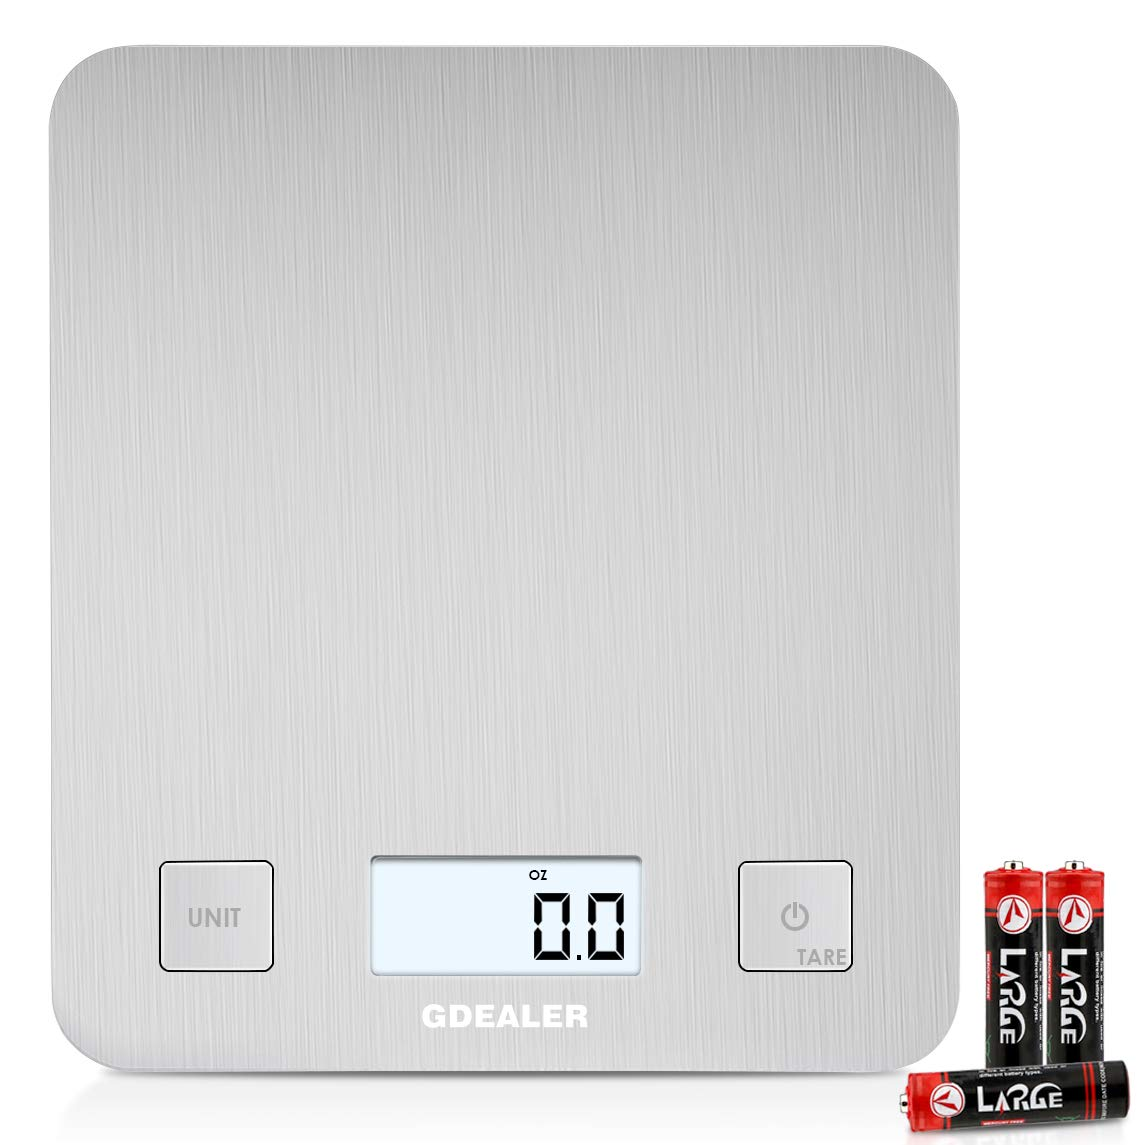 GDEALER Digital Food Scale with 30% Wider Platform,11lb/5kg Kitchen Scale with Large Stainless Steel Platform Back-lit LCD Display,Electronic Multifunctional Weight Scale for Dieting Cooking Baking by GDEALER